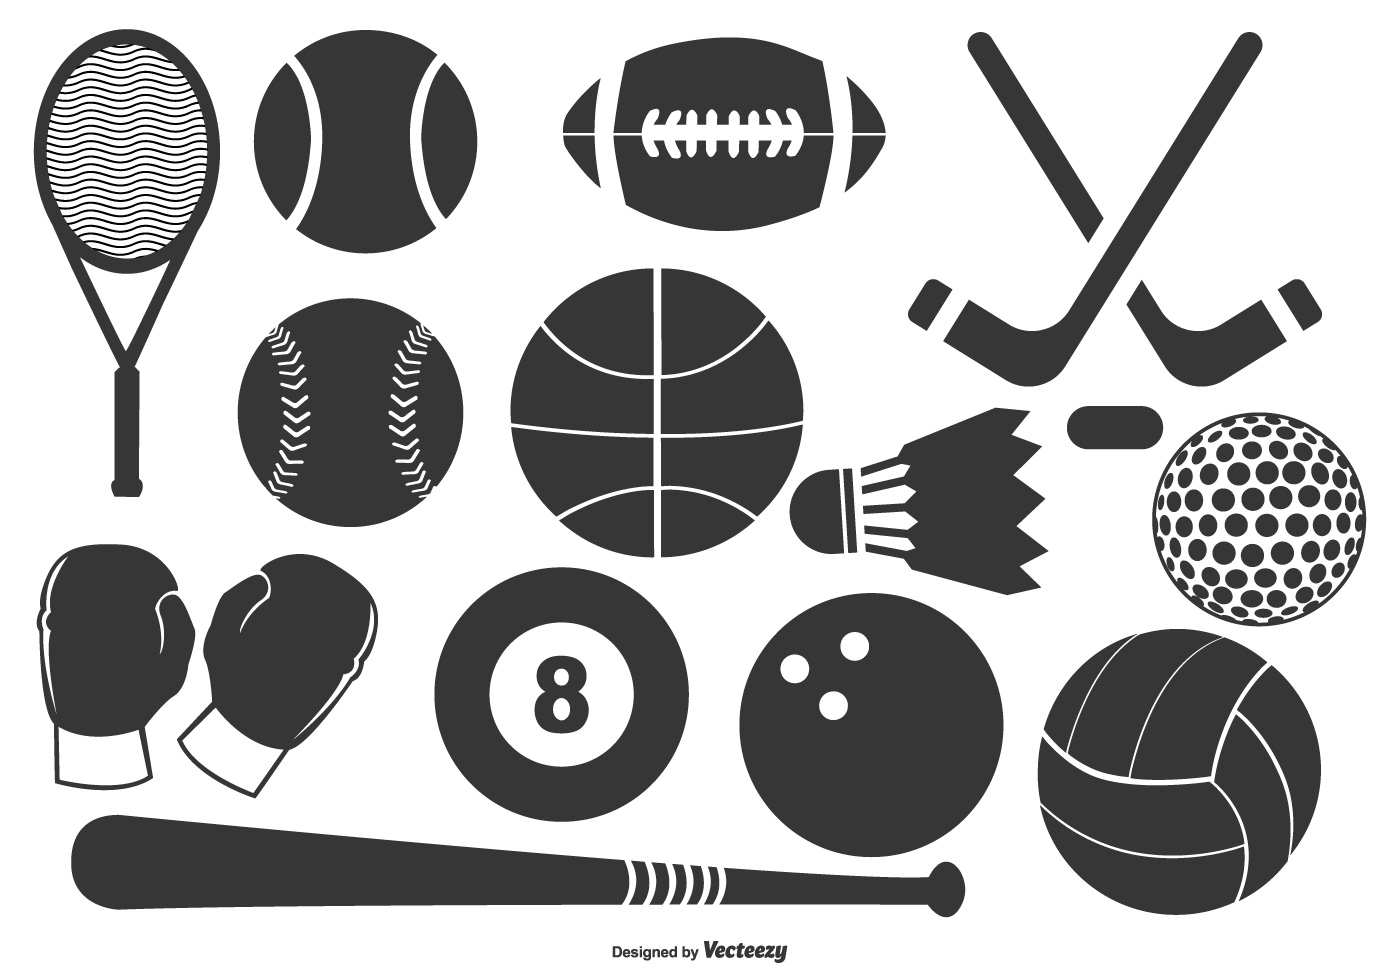 Discover & download free vector art!